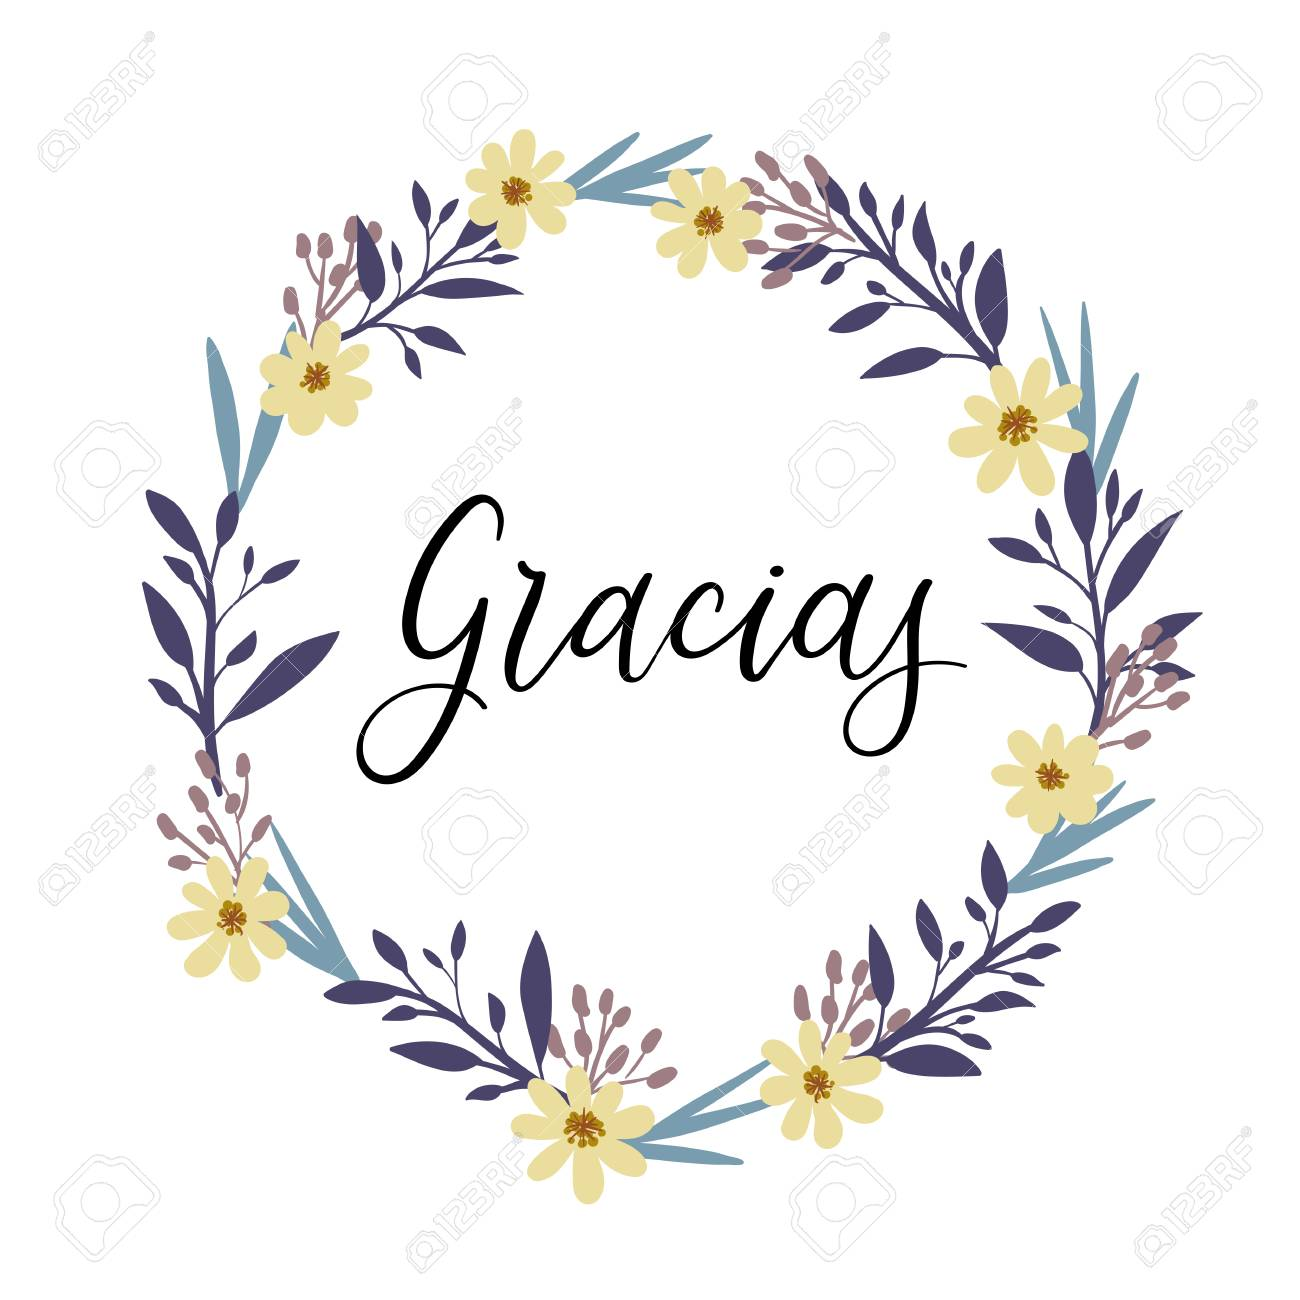 gracias. thank you in spanish calligraphy greeting card. vector